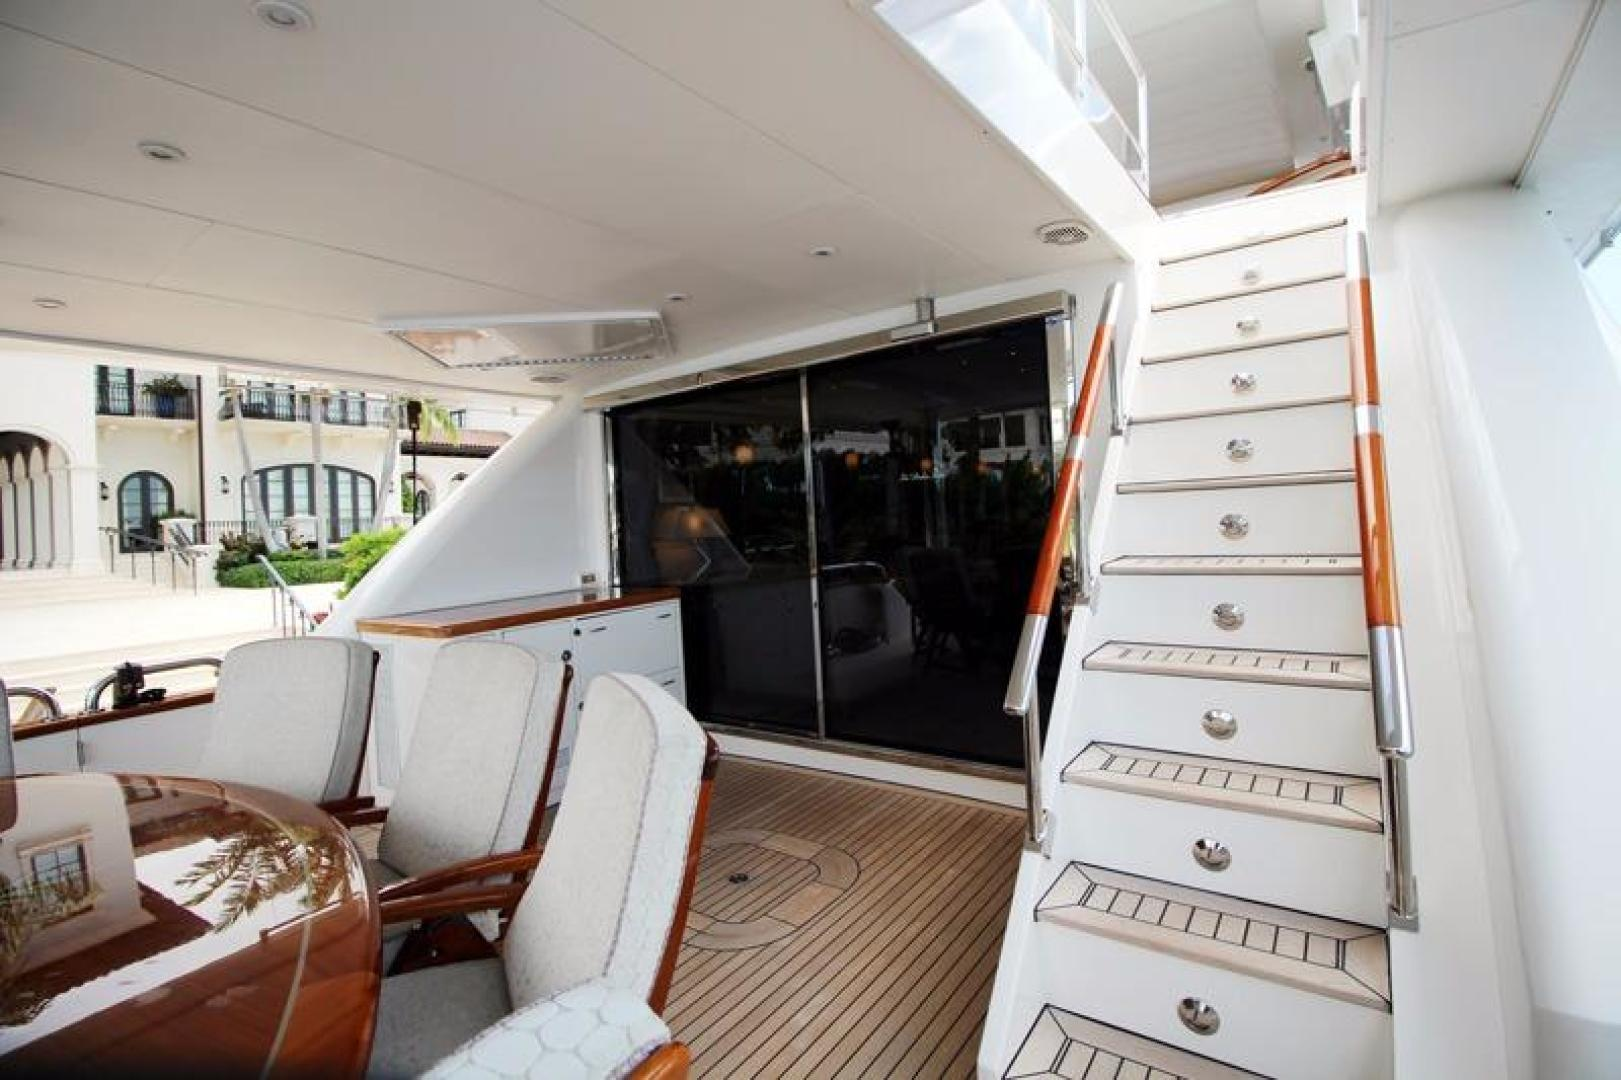 Picture Of: 101' Hargrave Raised Pilot House Motor Yacht 2009 Yacht For Sale   2 of 64